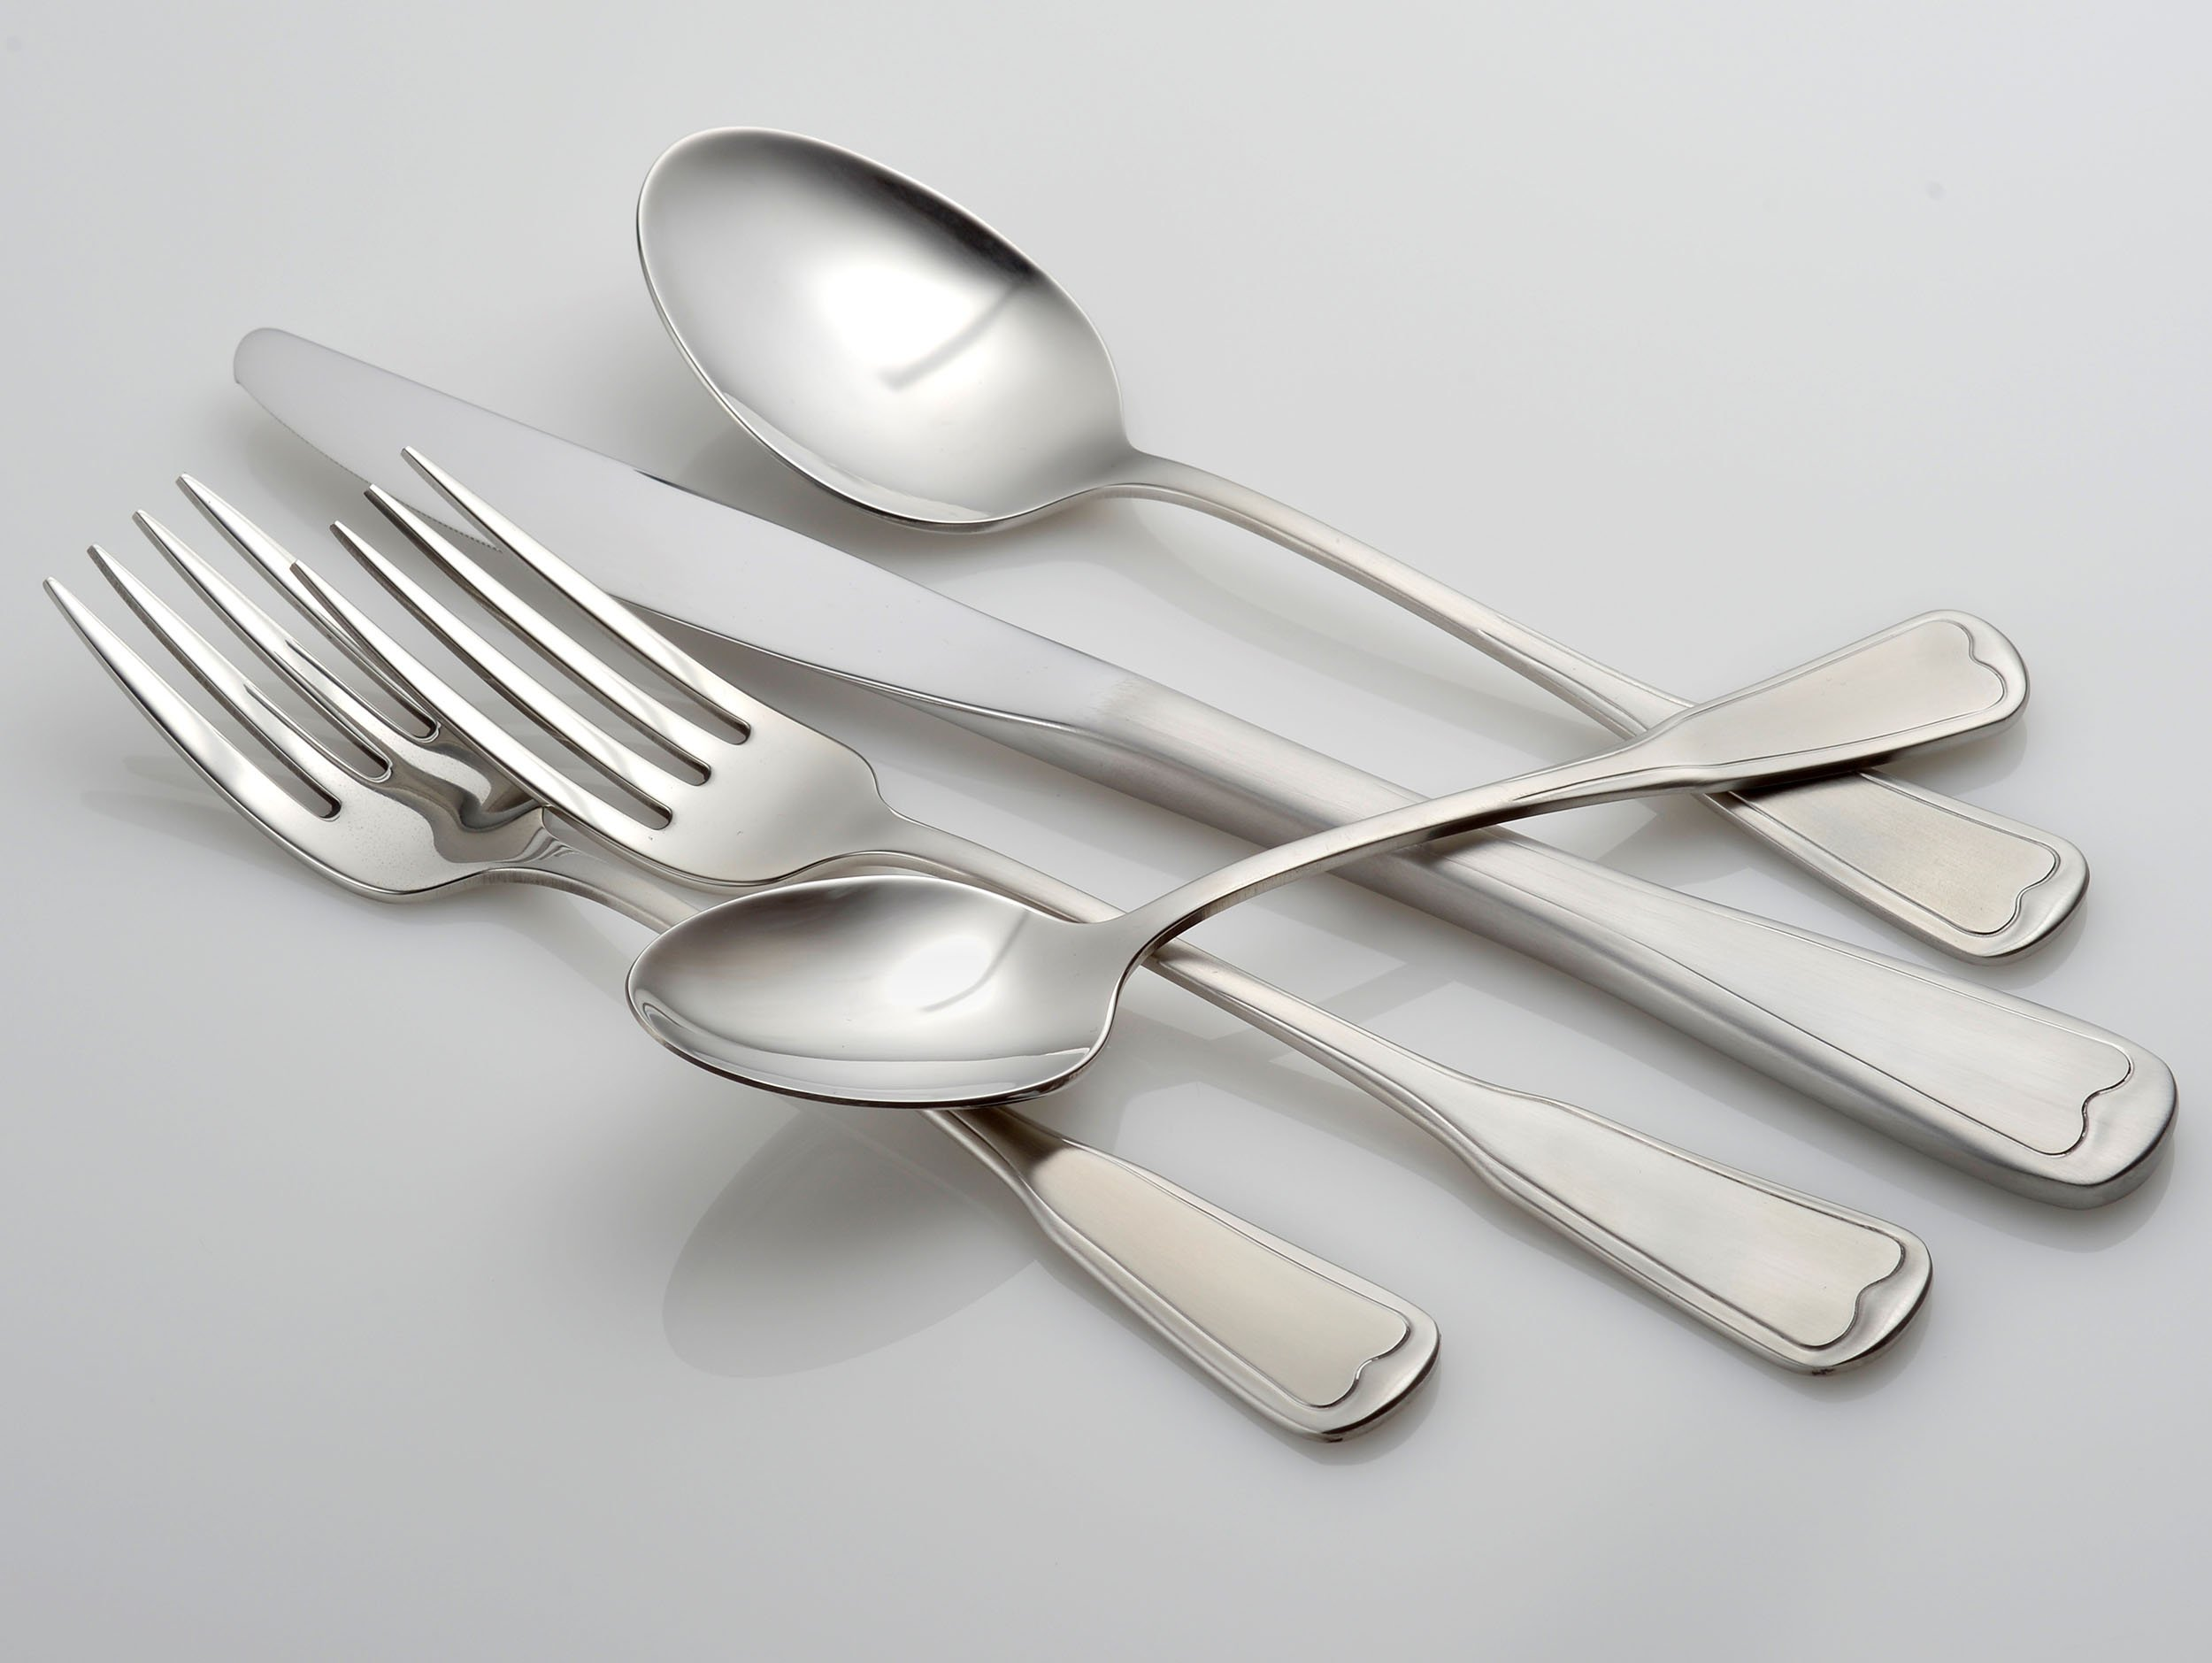 Liberty Tabletop Satin Richmond 20 Piece Flatware Set service for 4 stainless steel 18/10 Made in USA by Liberty Tabletop (Image #2)